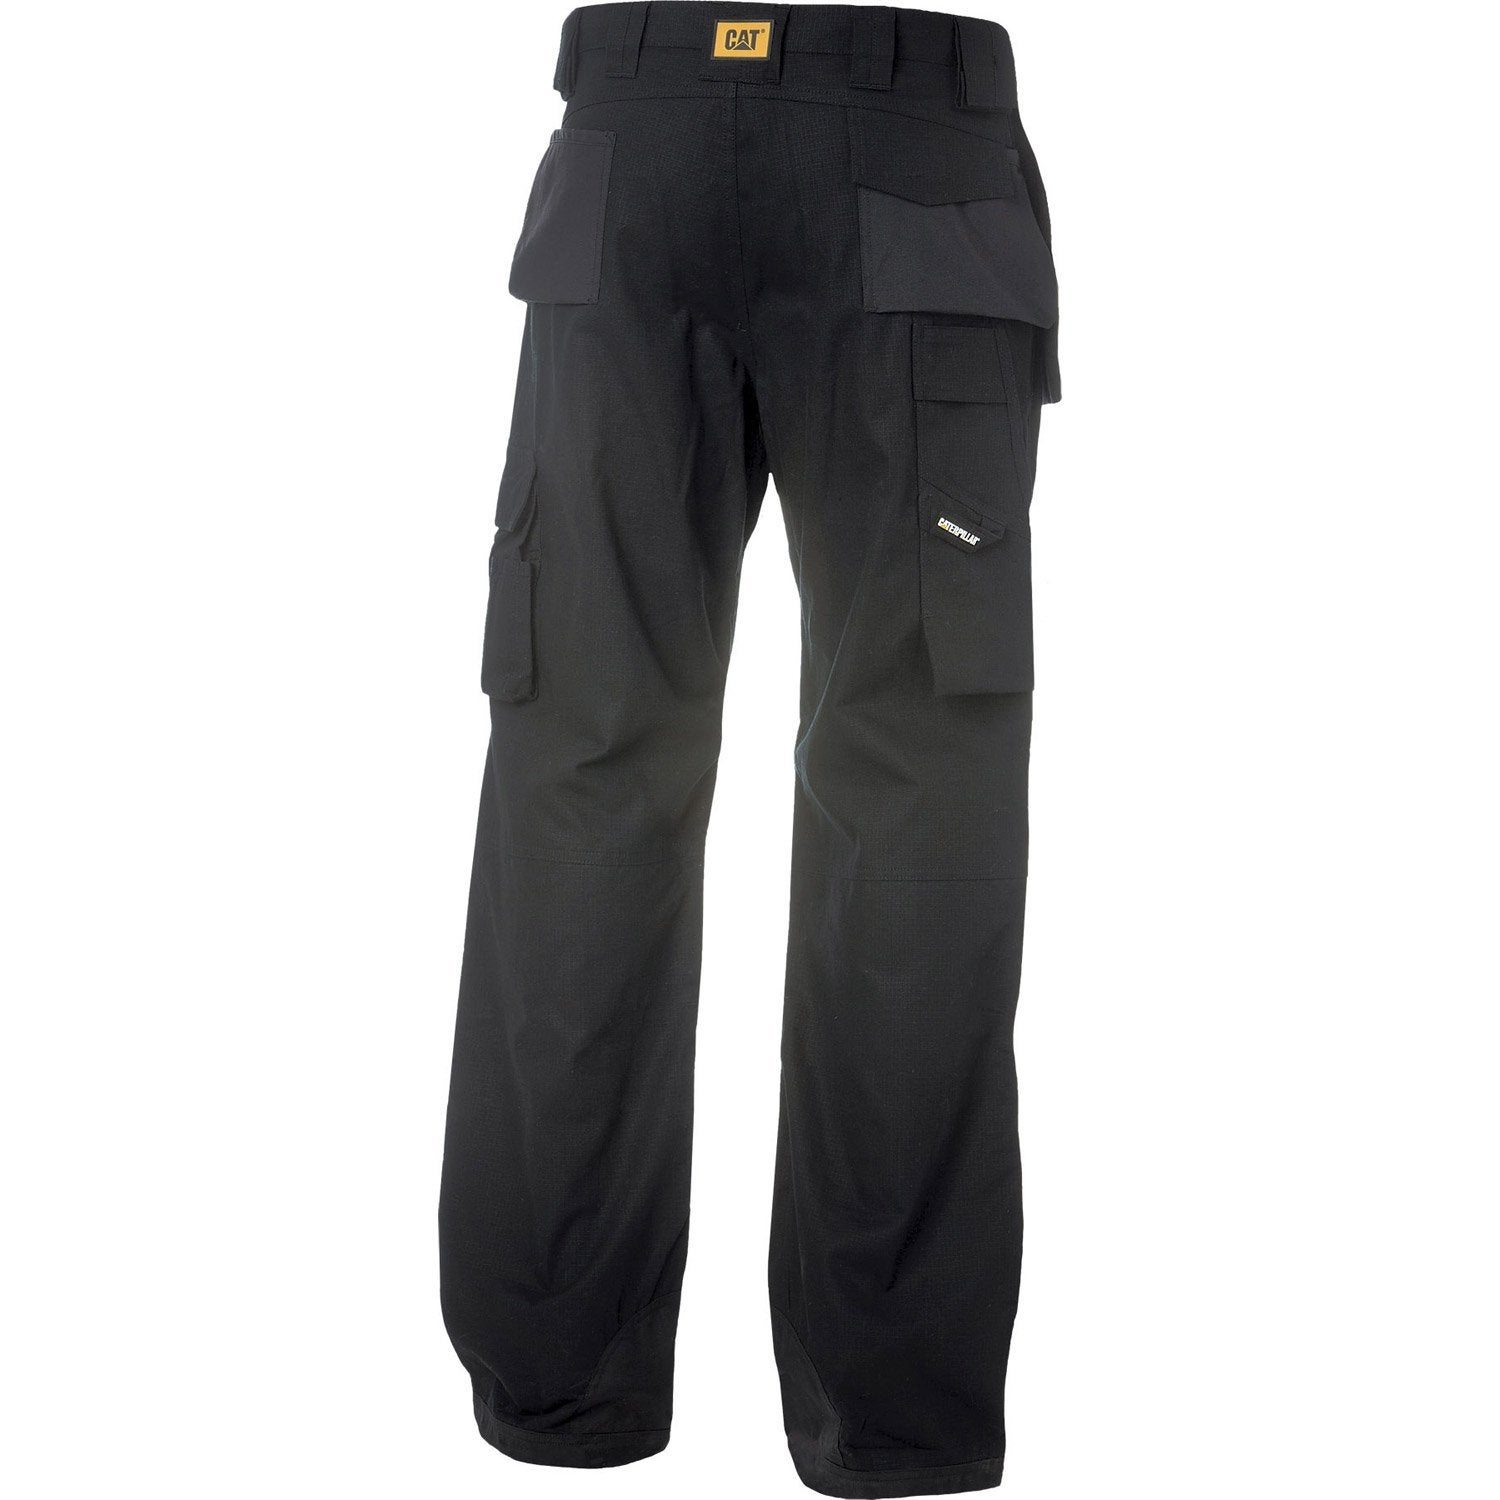 De Dl Pantalon Multipoche Taille Travail 44 Caterpillar TrouserNoir 46 uZOPwlkXiT